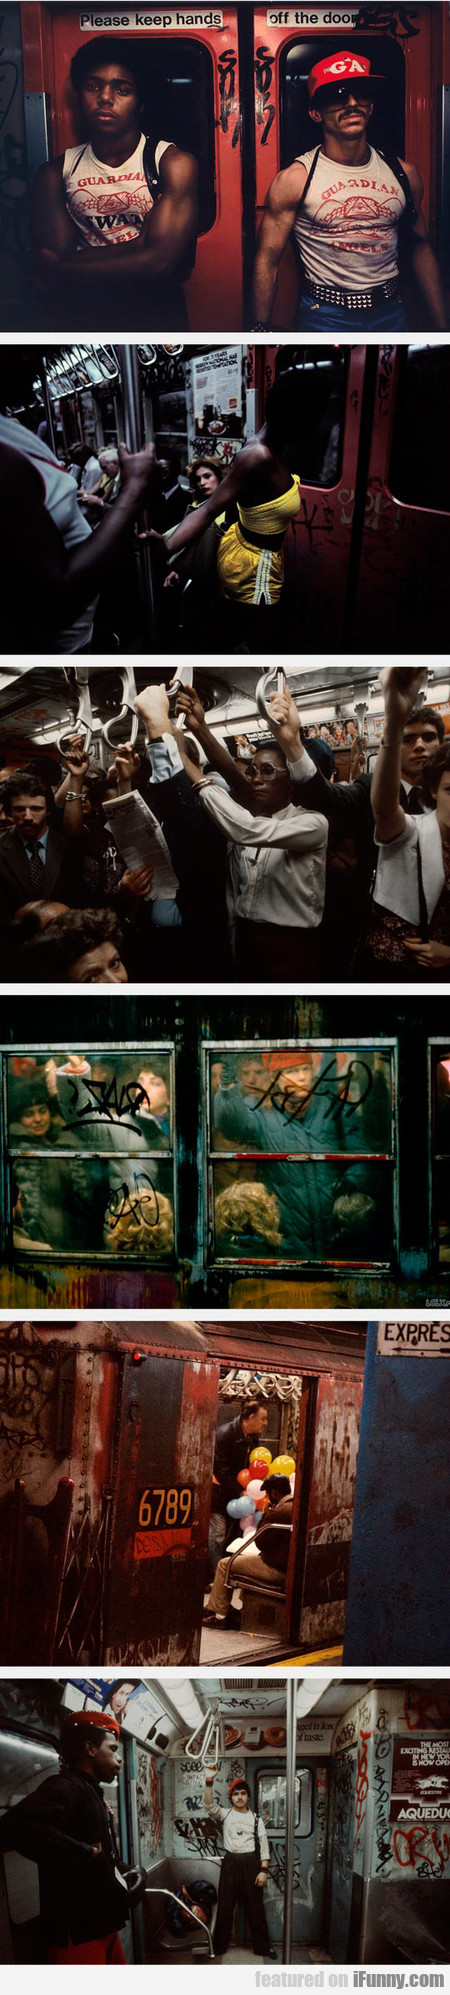 The New York City Subway In The 80s